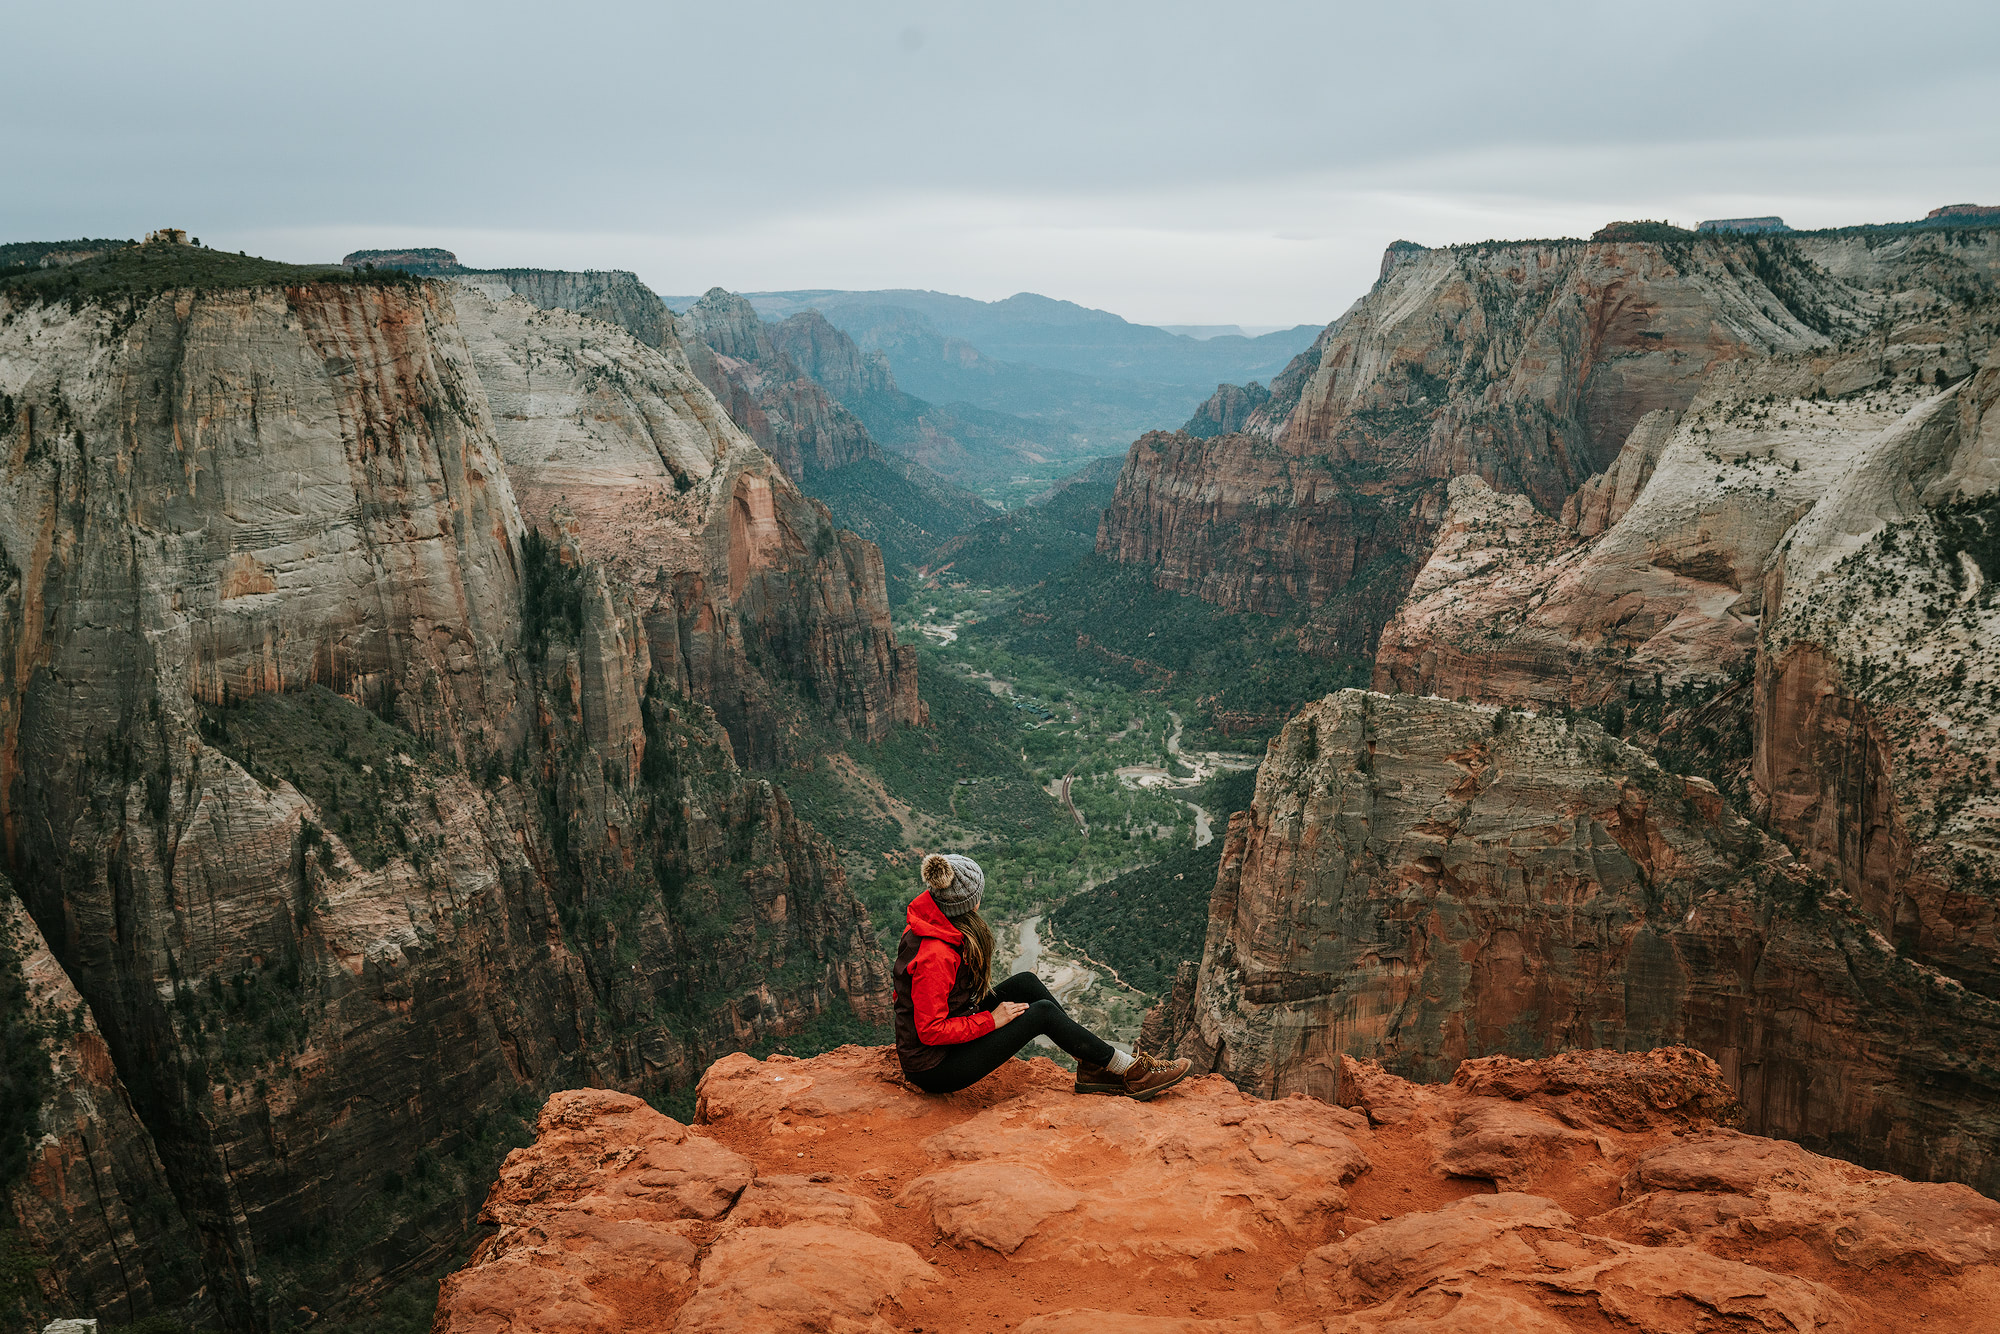 AMERICA'S NATIONAL PARKS – ALL 59 RANKED BEST TO WORST - ZION NATIONAL PARK